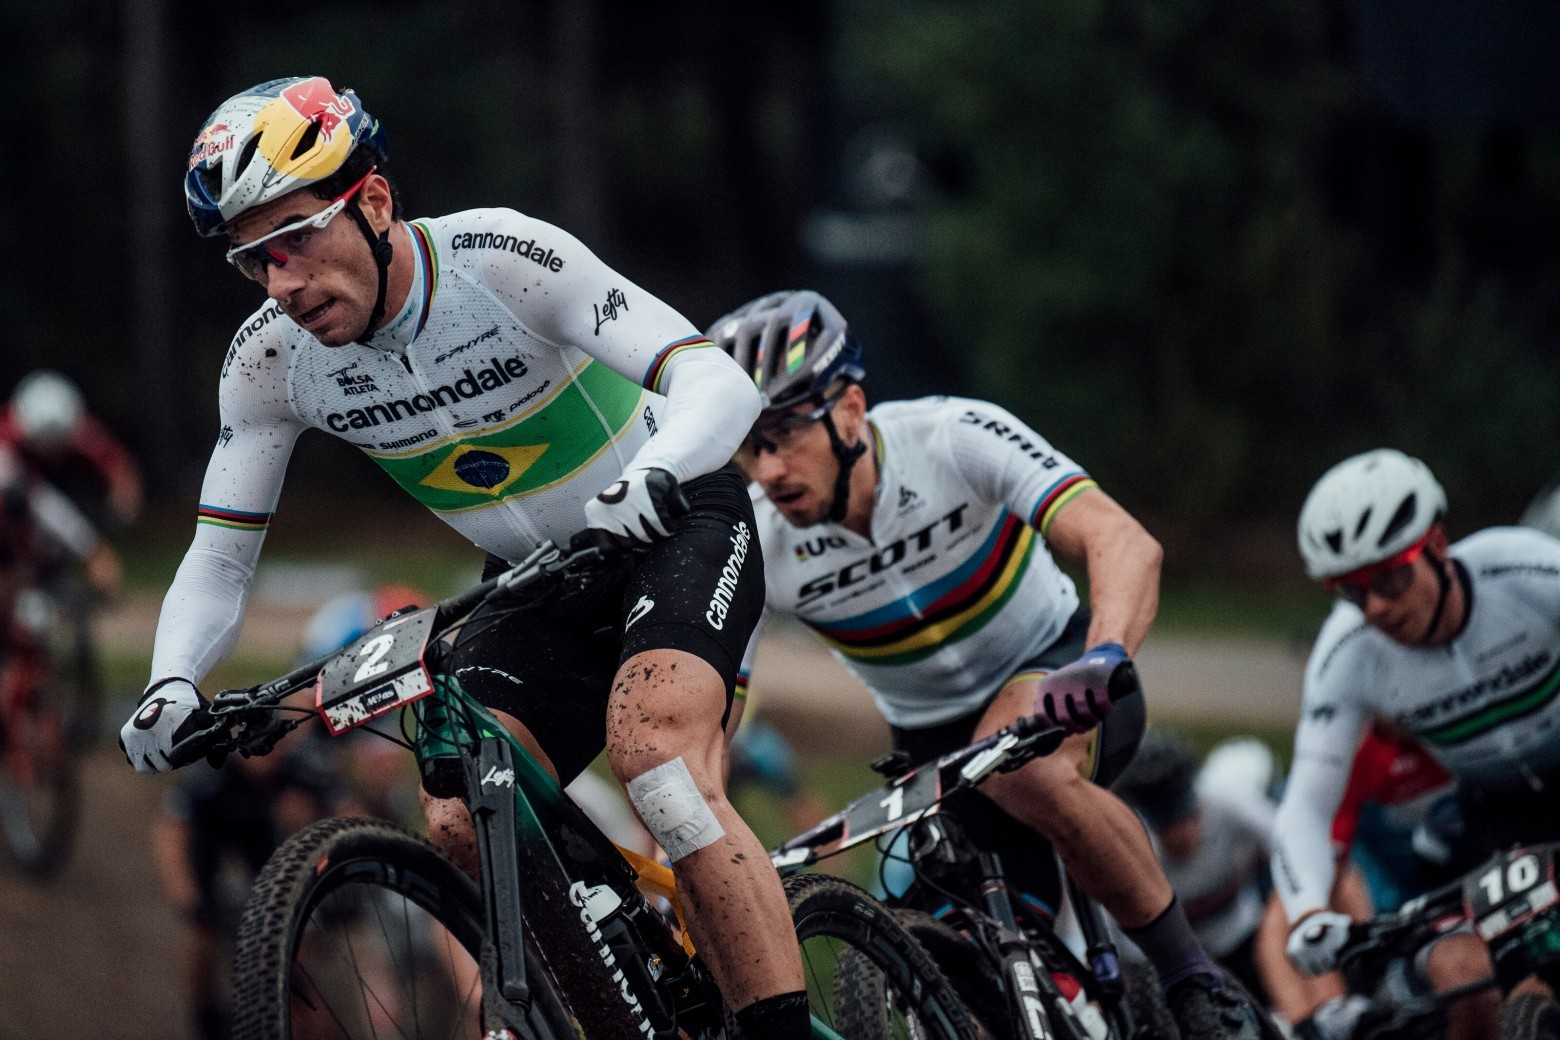 Uci Calendar 2022.The Uci Announces The Mtb Calendar For 2022 With Brazil As The Big New Addition